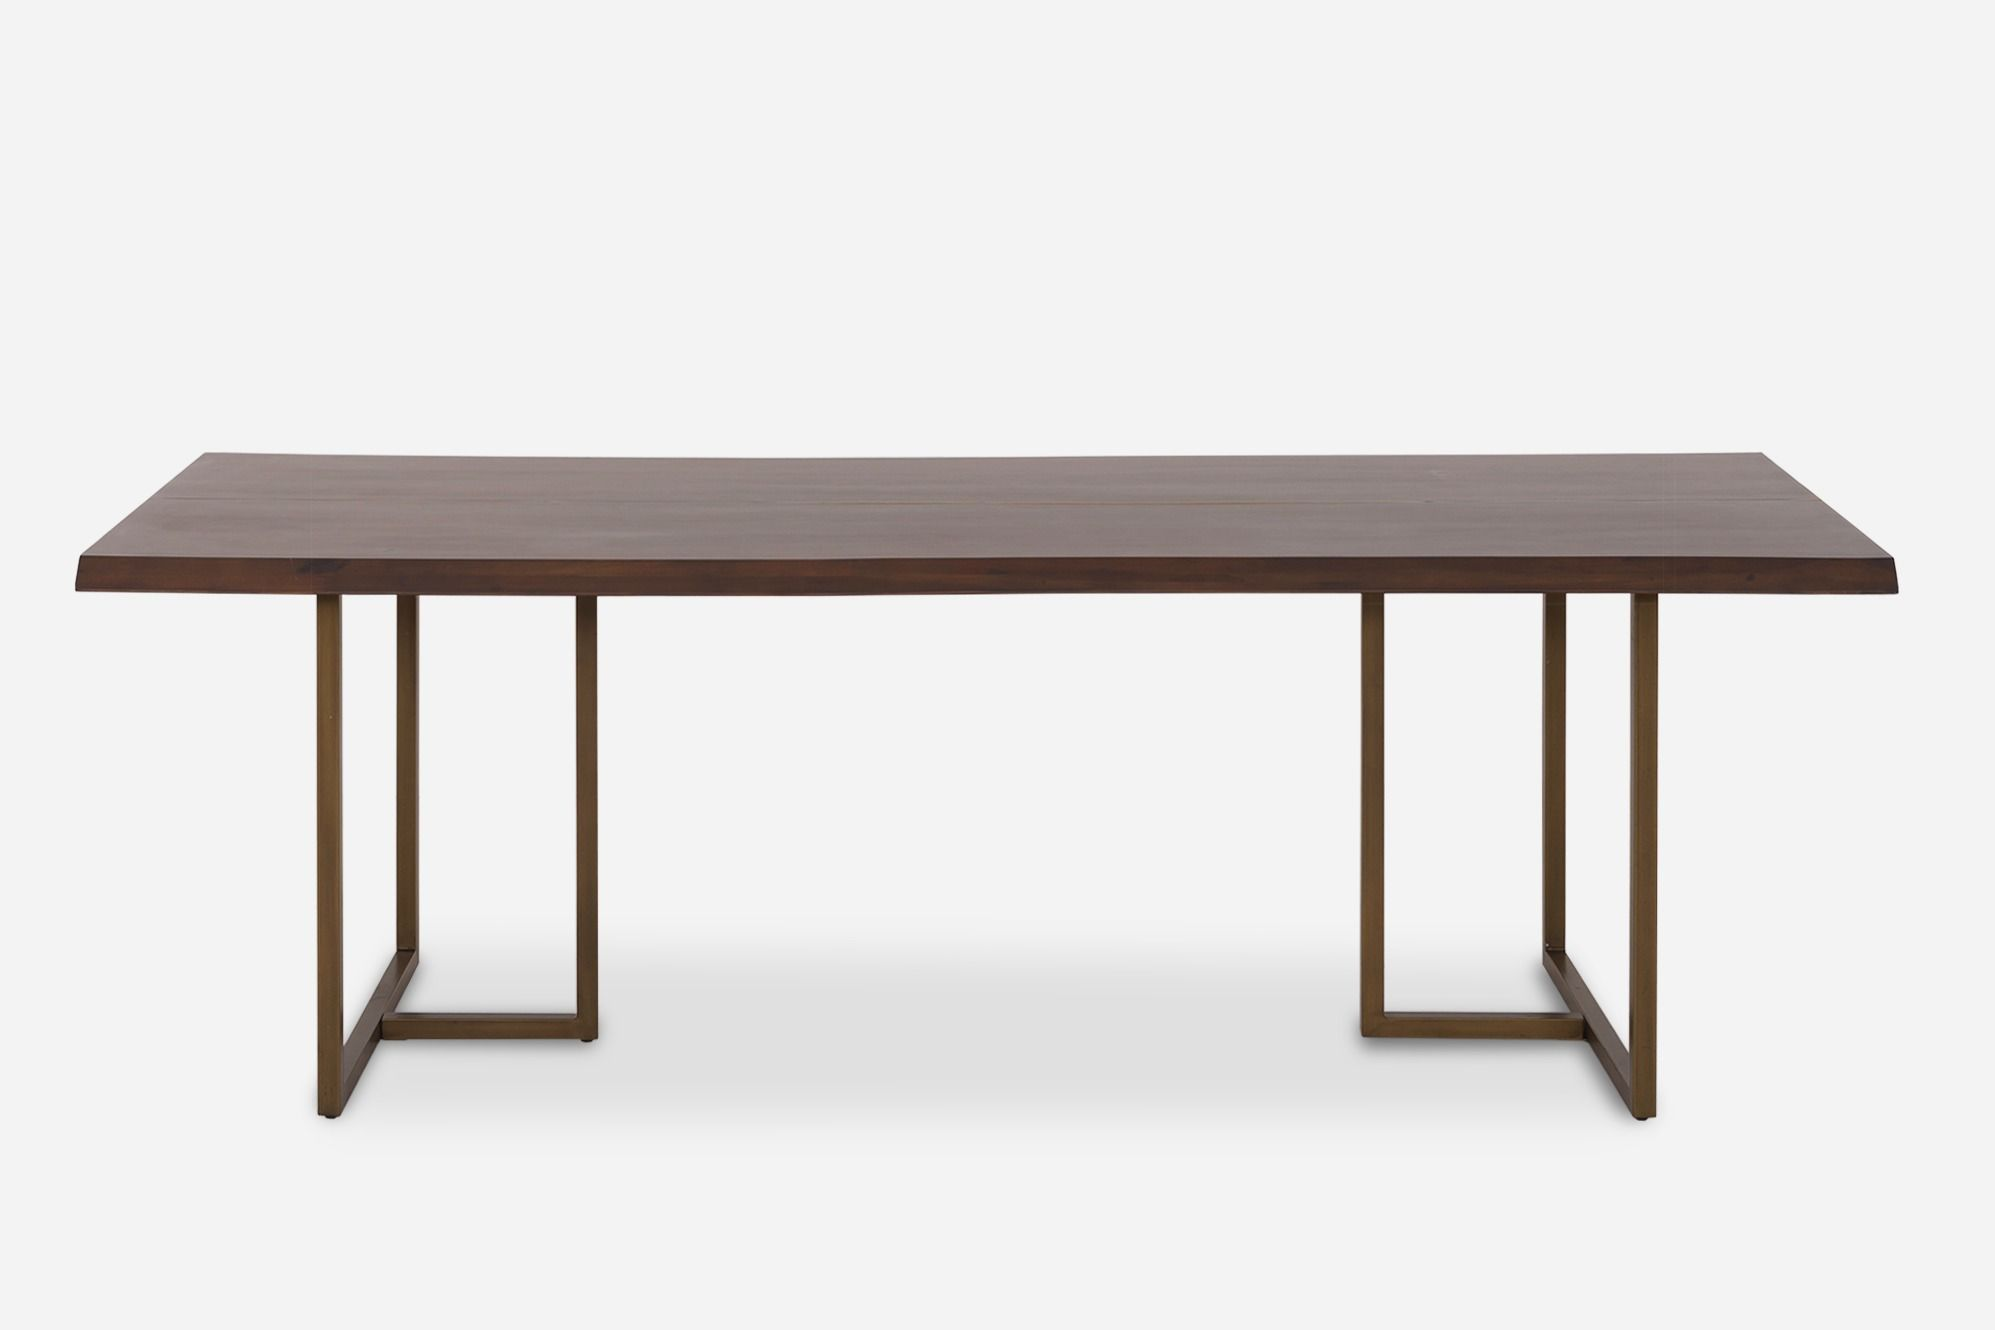 Chadstone Dining Table 210cm Castlery Singapore Dining Table